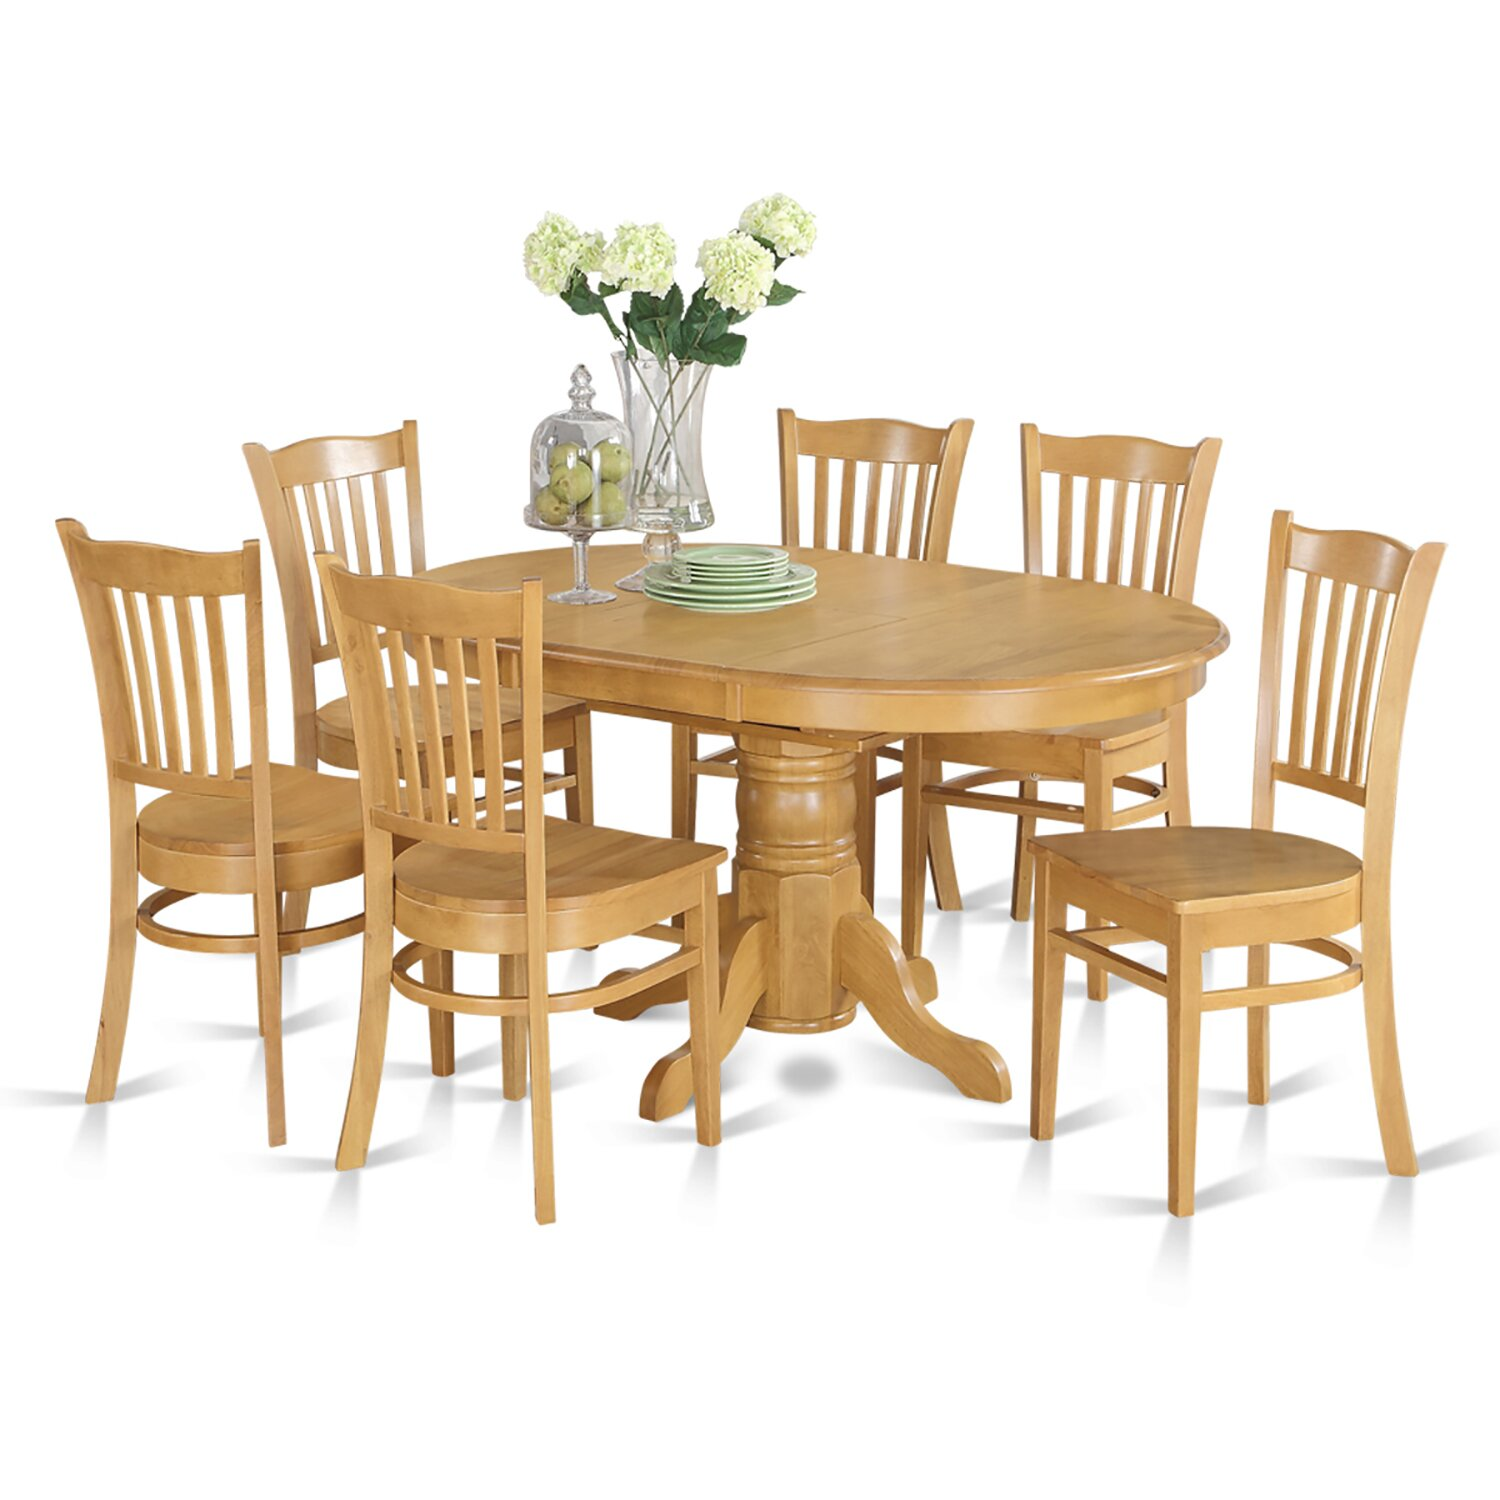 7 Piece Dining Set ~ Darby home co attamore piece dining set reviews